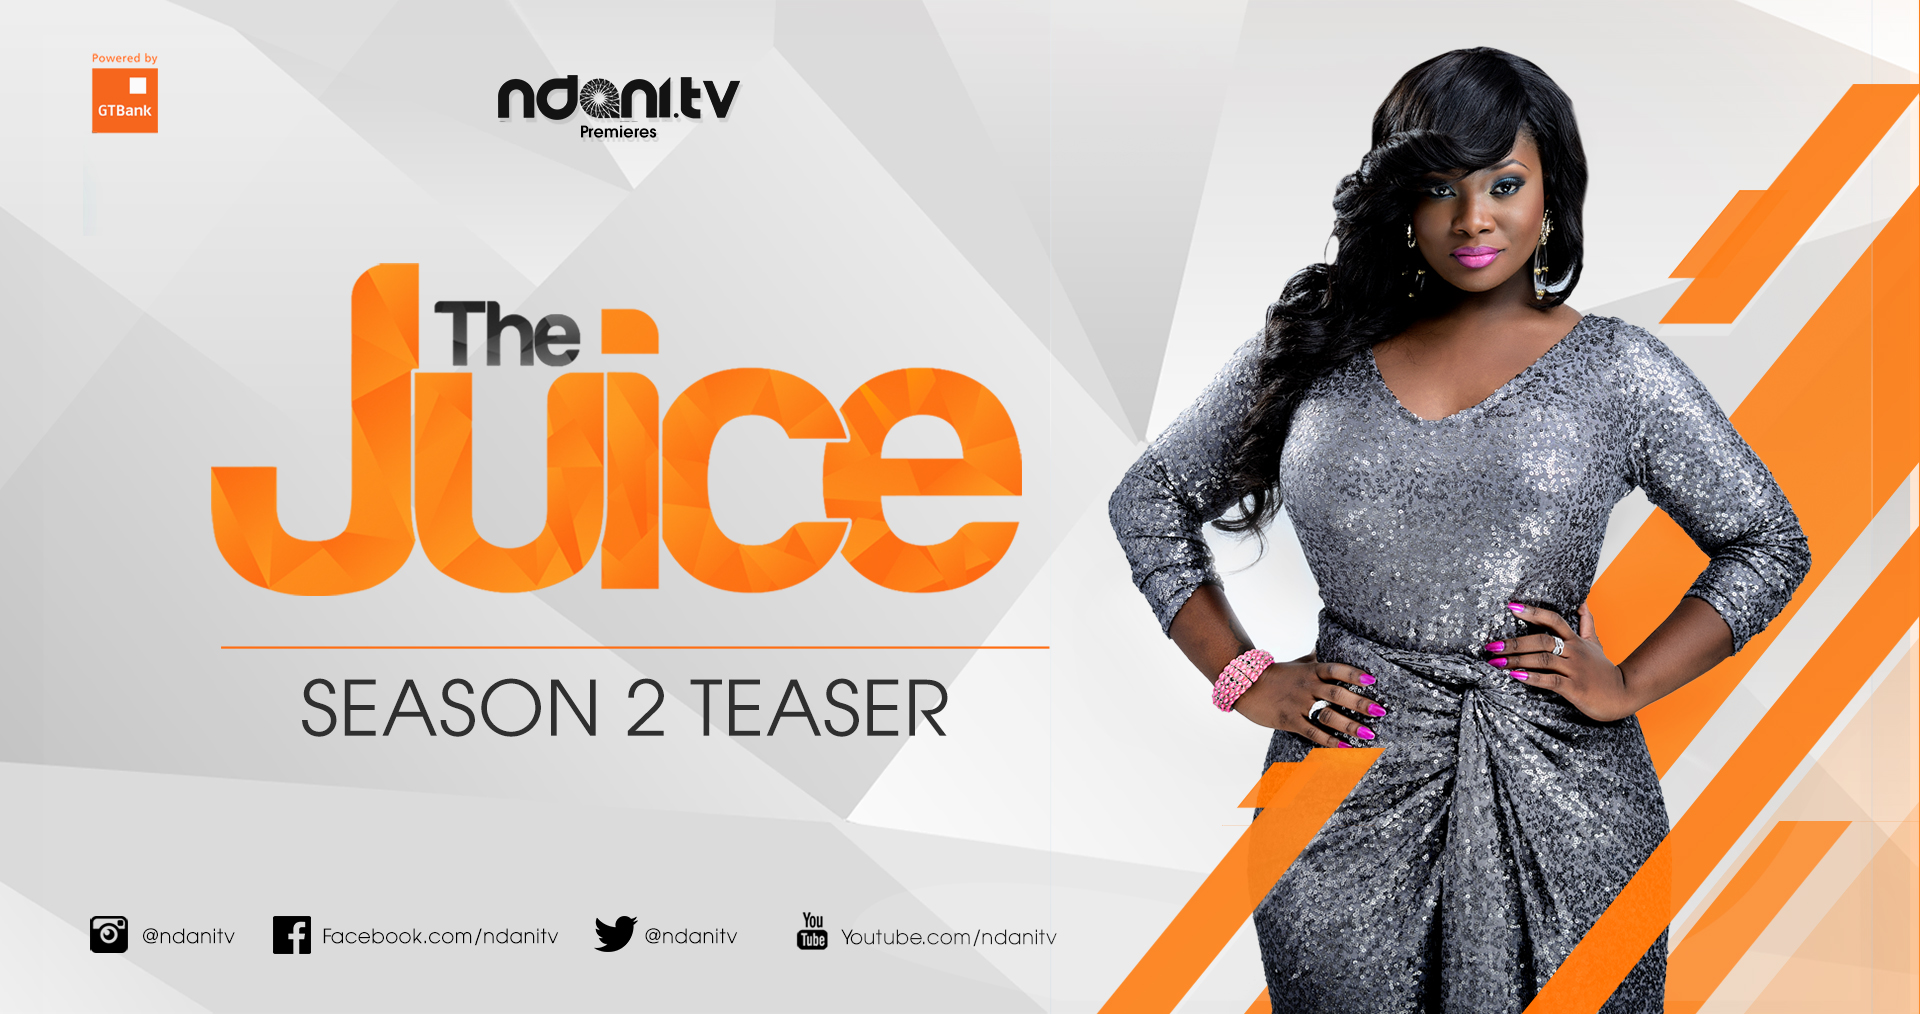 Tool on the cover of GTBank-powered Ndani TV's The Juice Season 2. (Image Source: Ndani.tv)